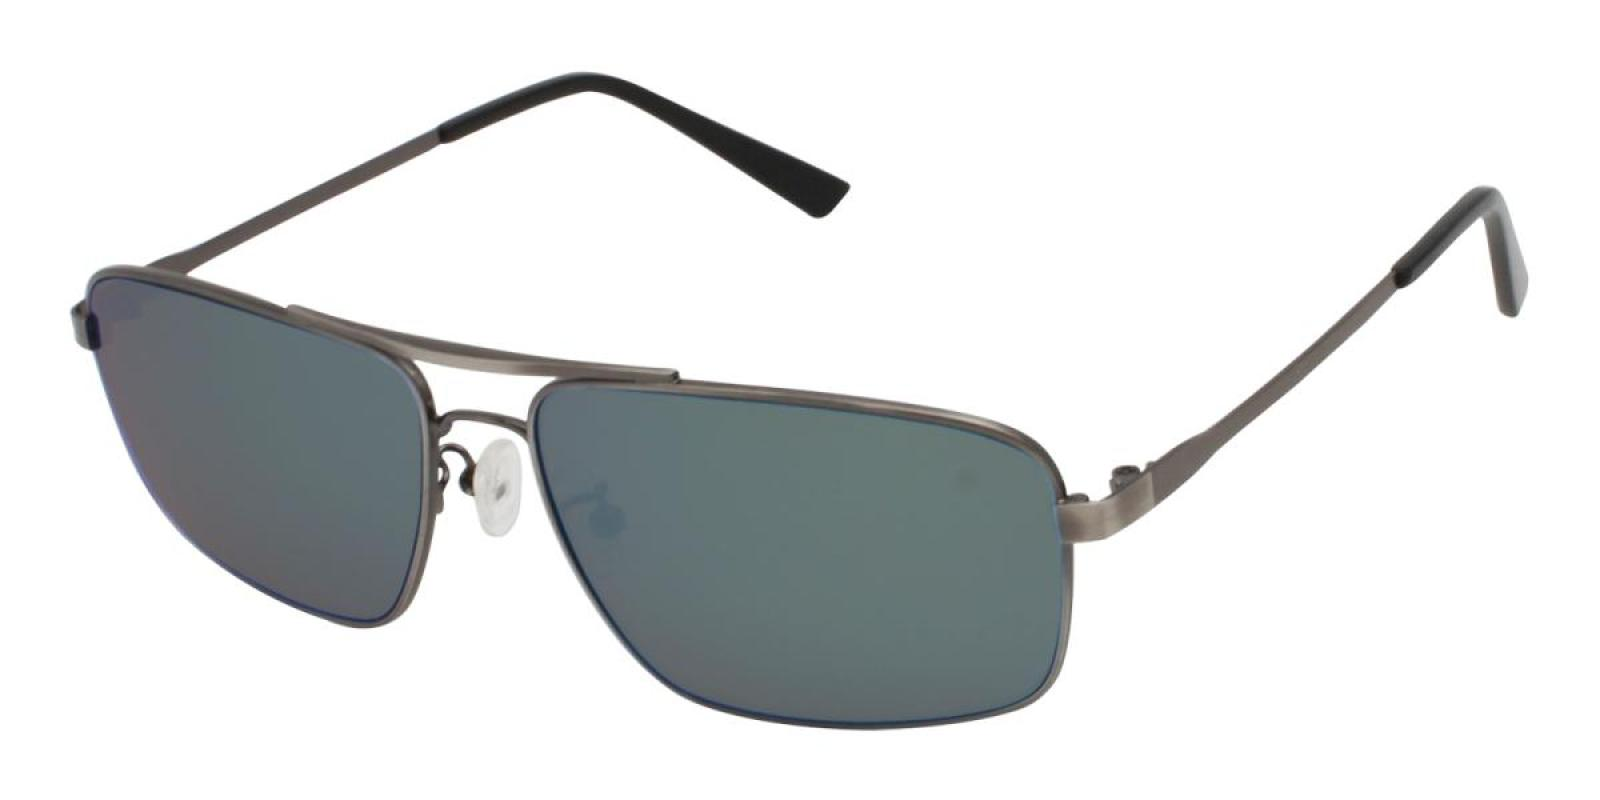 Santorini-Gun-Aviator-Metal-Sunglasses-additional1